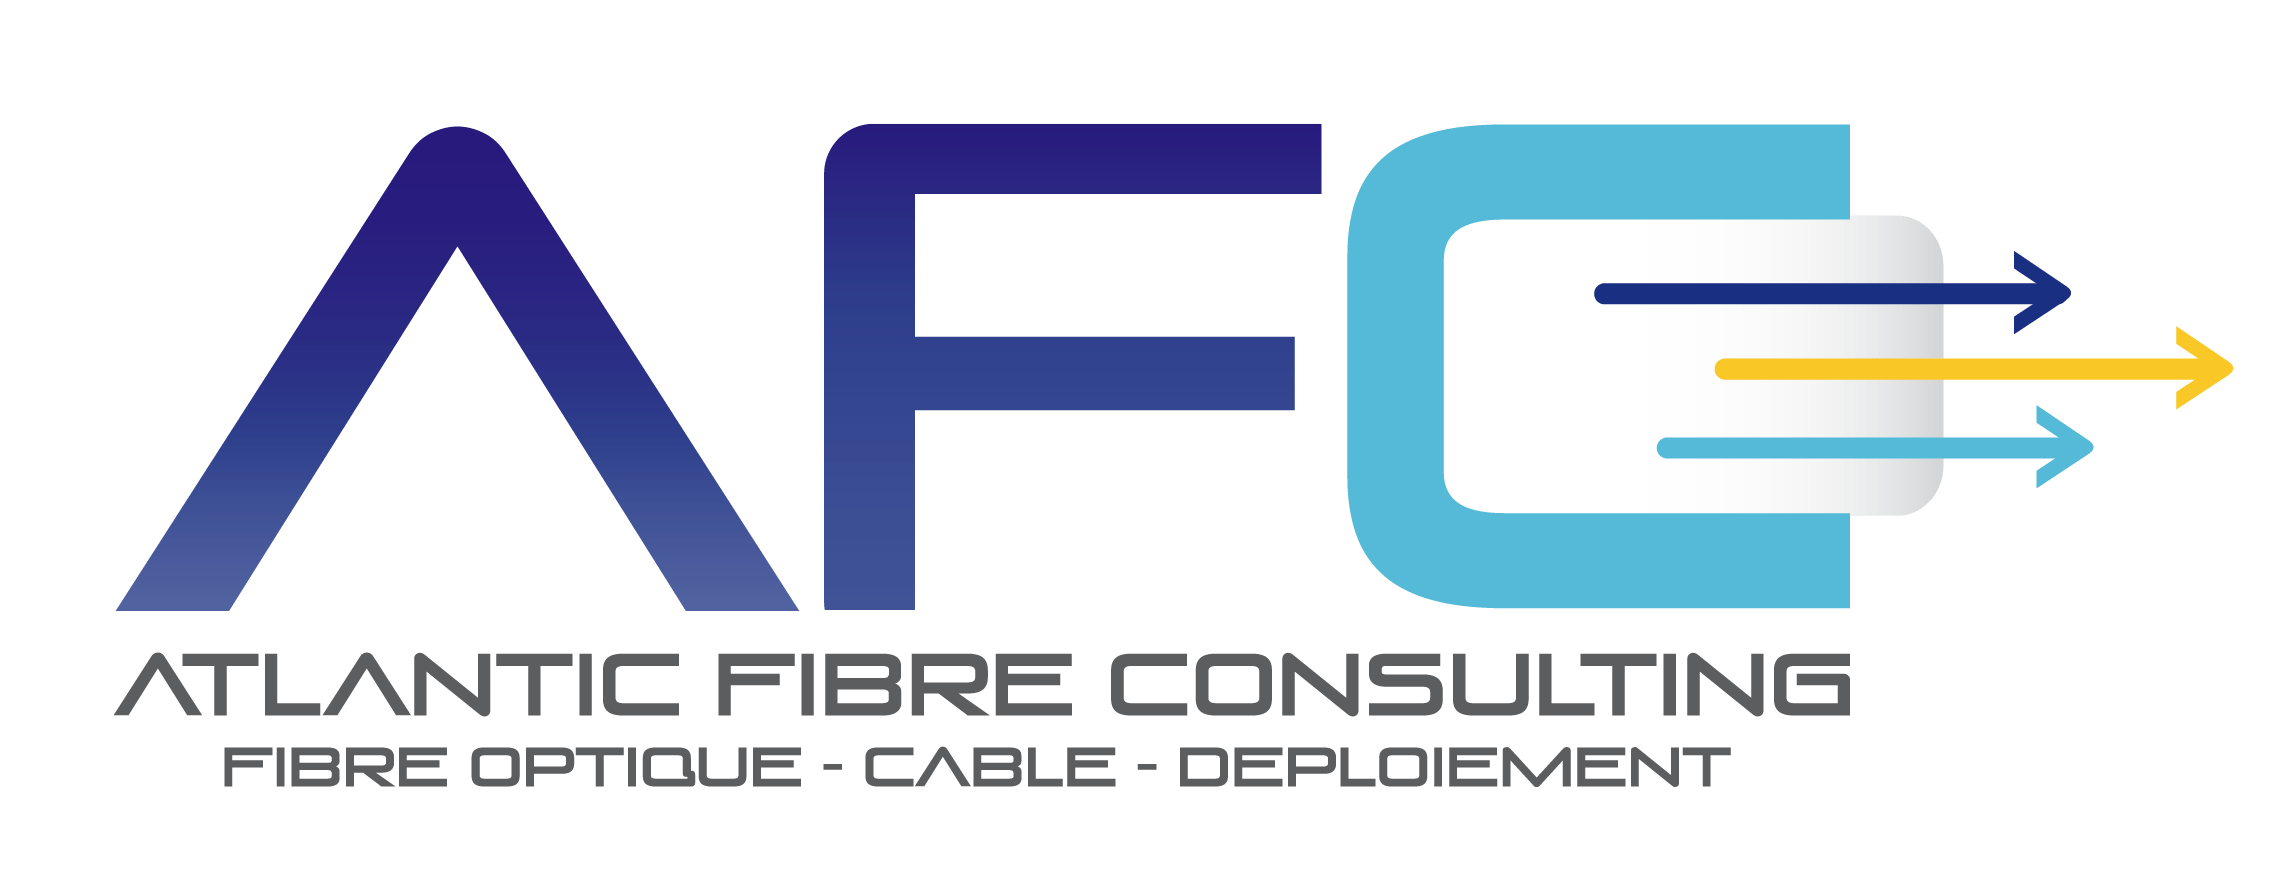 Atlantic Fibre Consulting